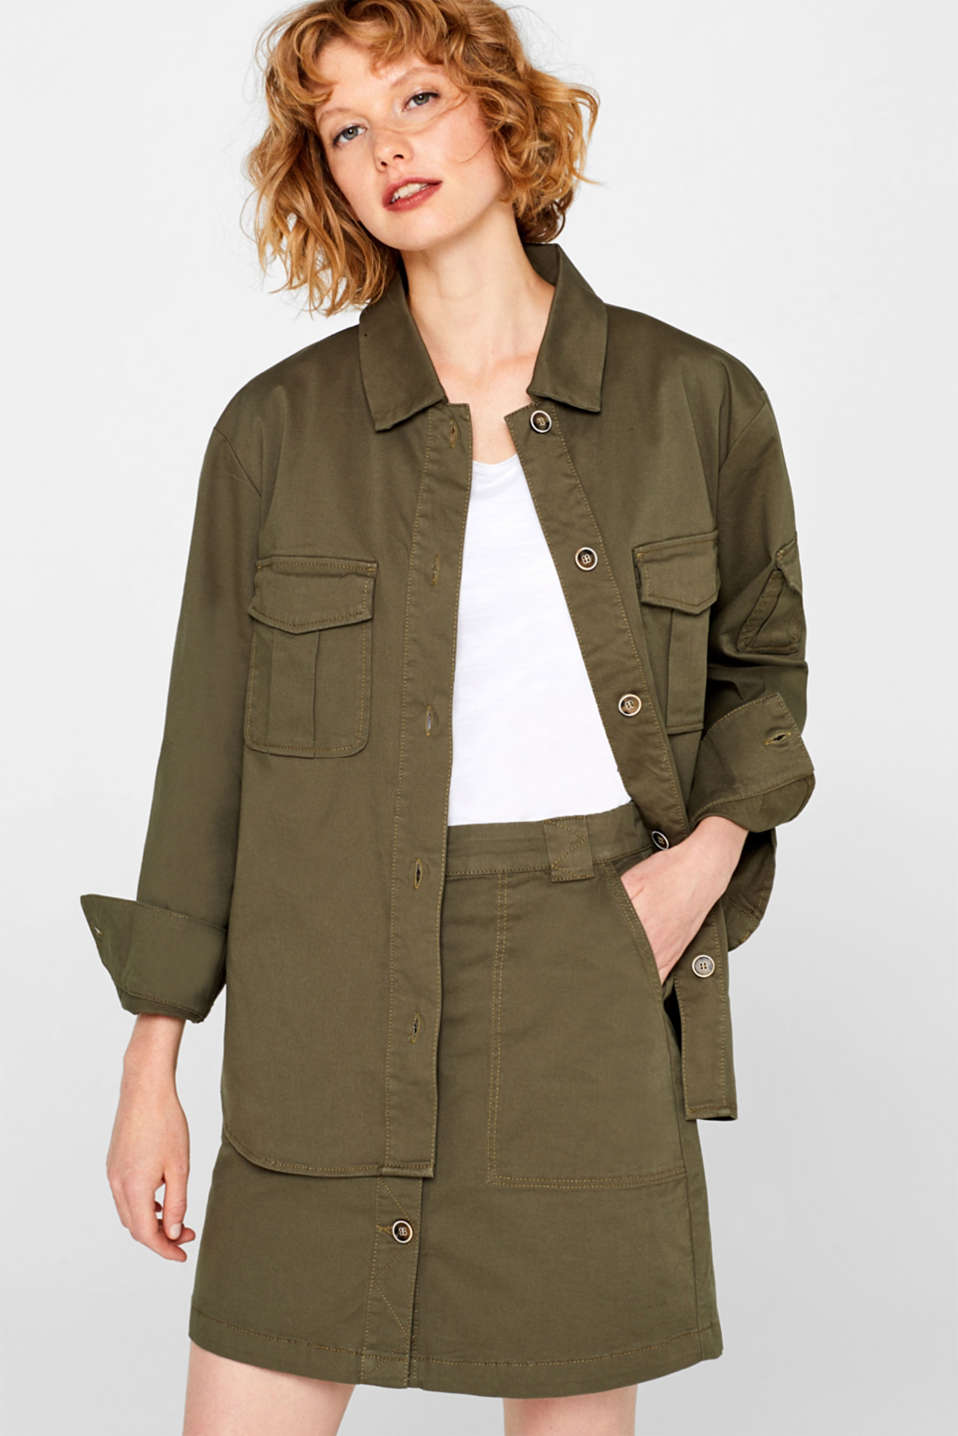 Esprit - Field jacket made of cotton